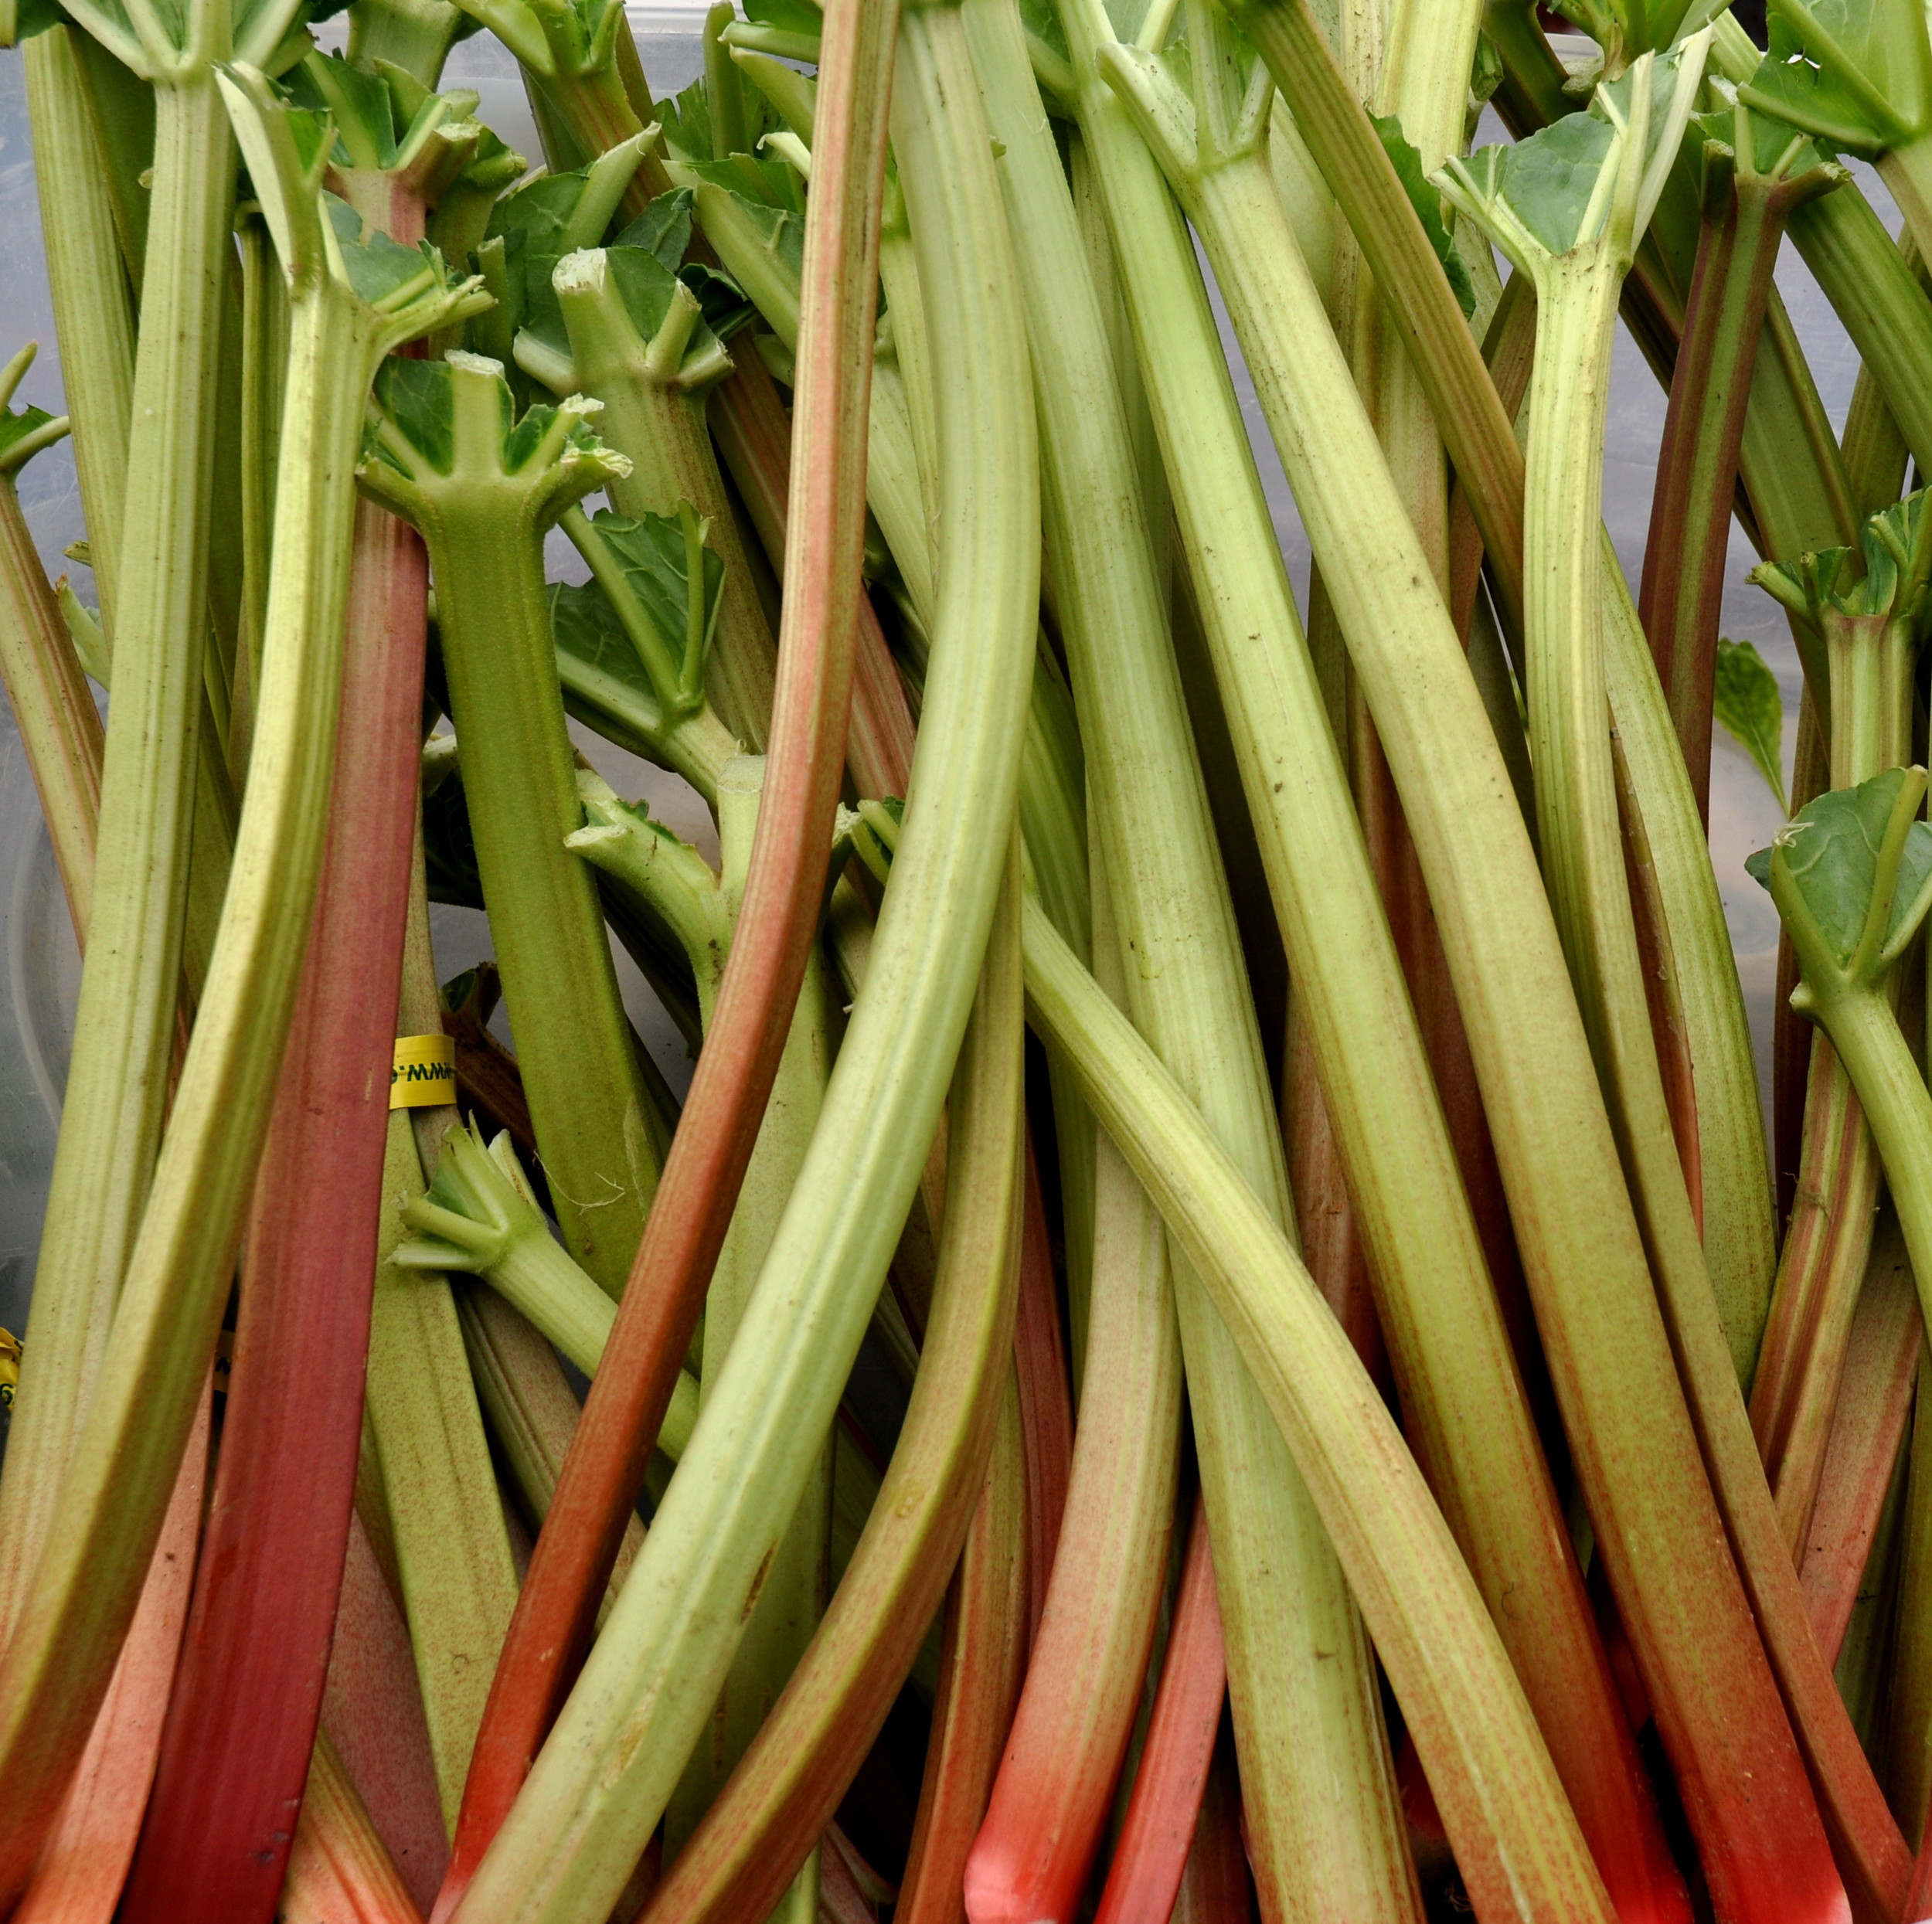 Early spring rhubarb from Alm Hill Gardens. Photo copyright 2013 by Zachary D. Lyons.